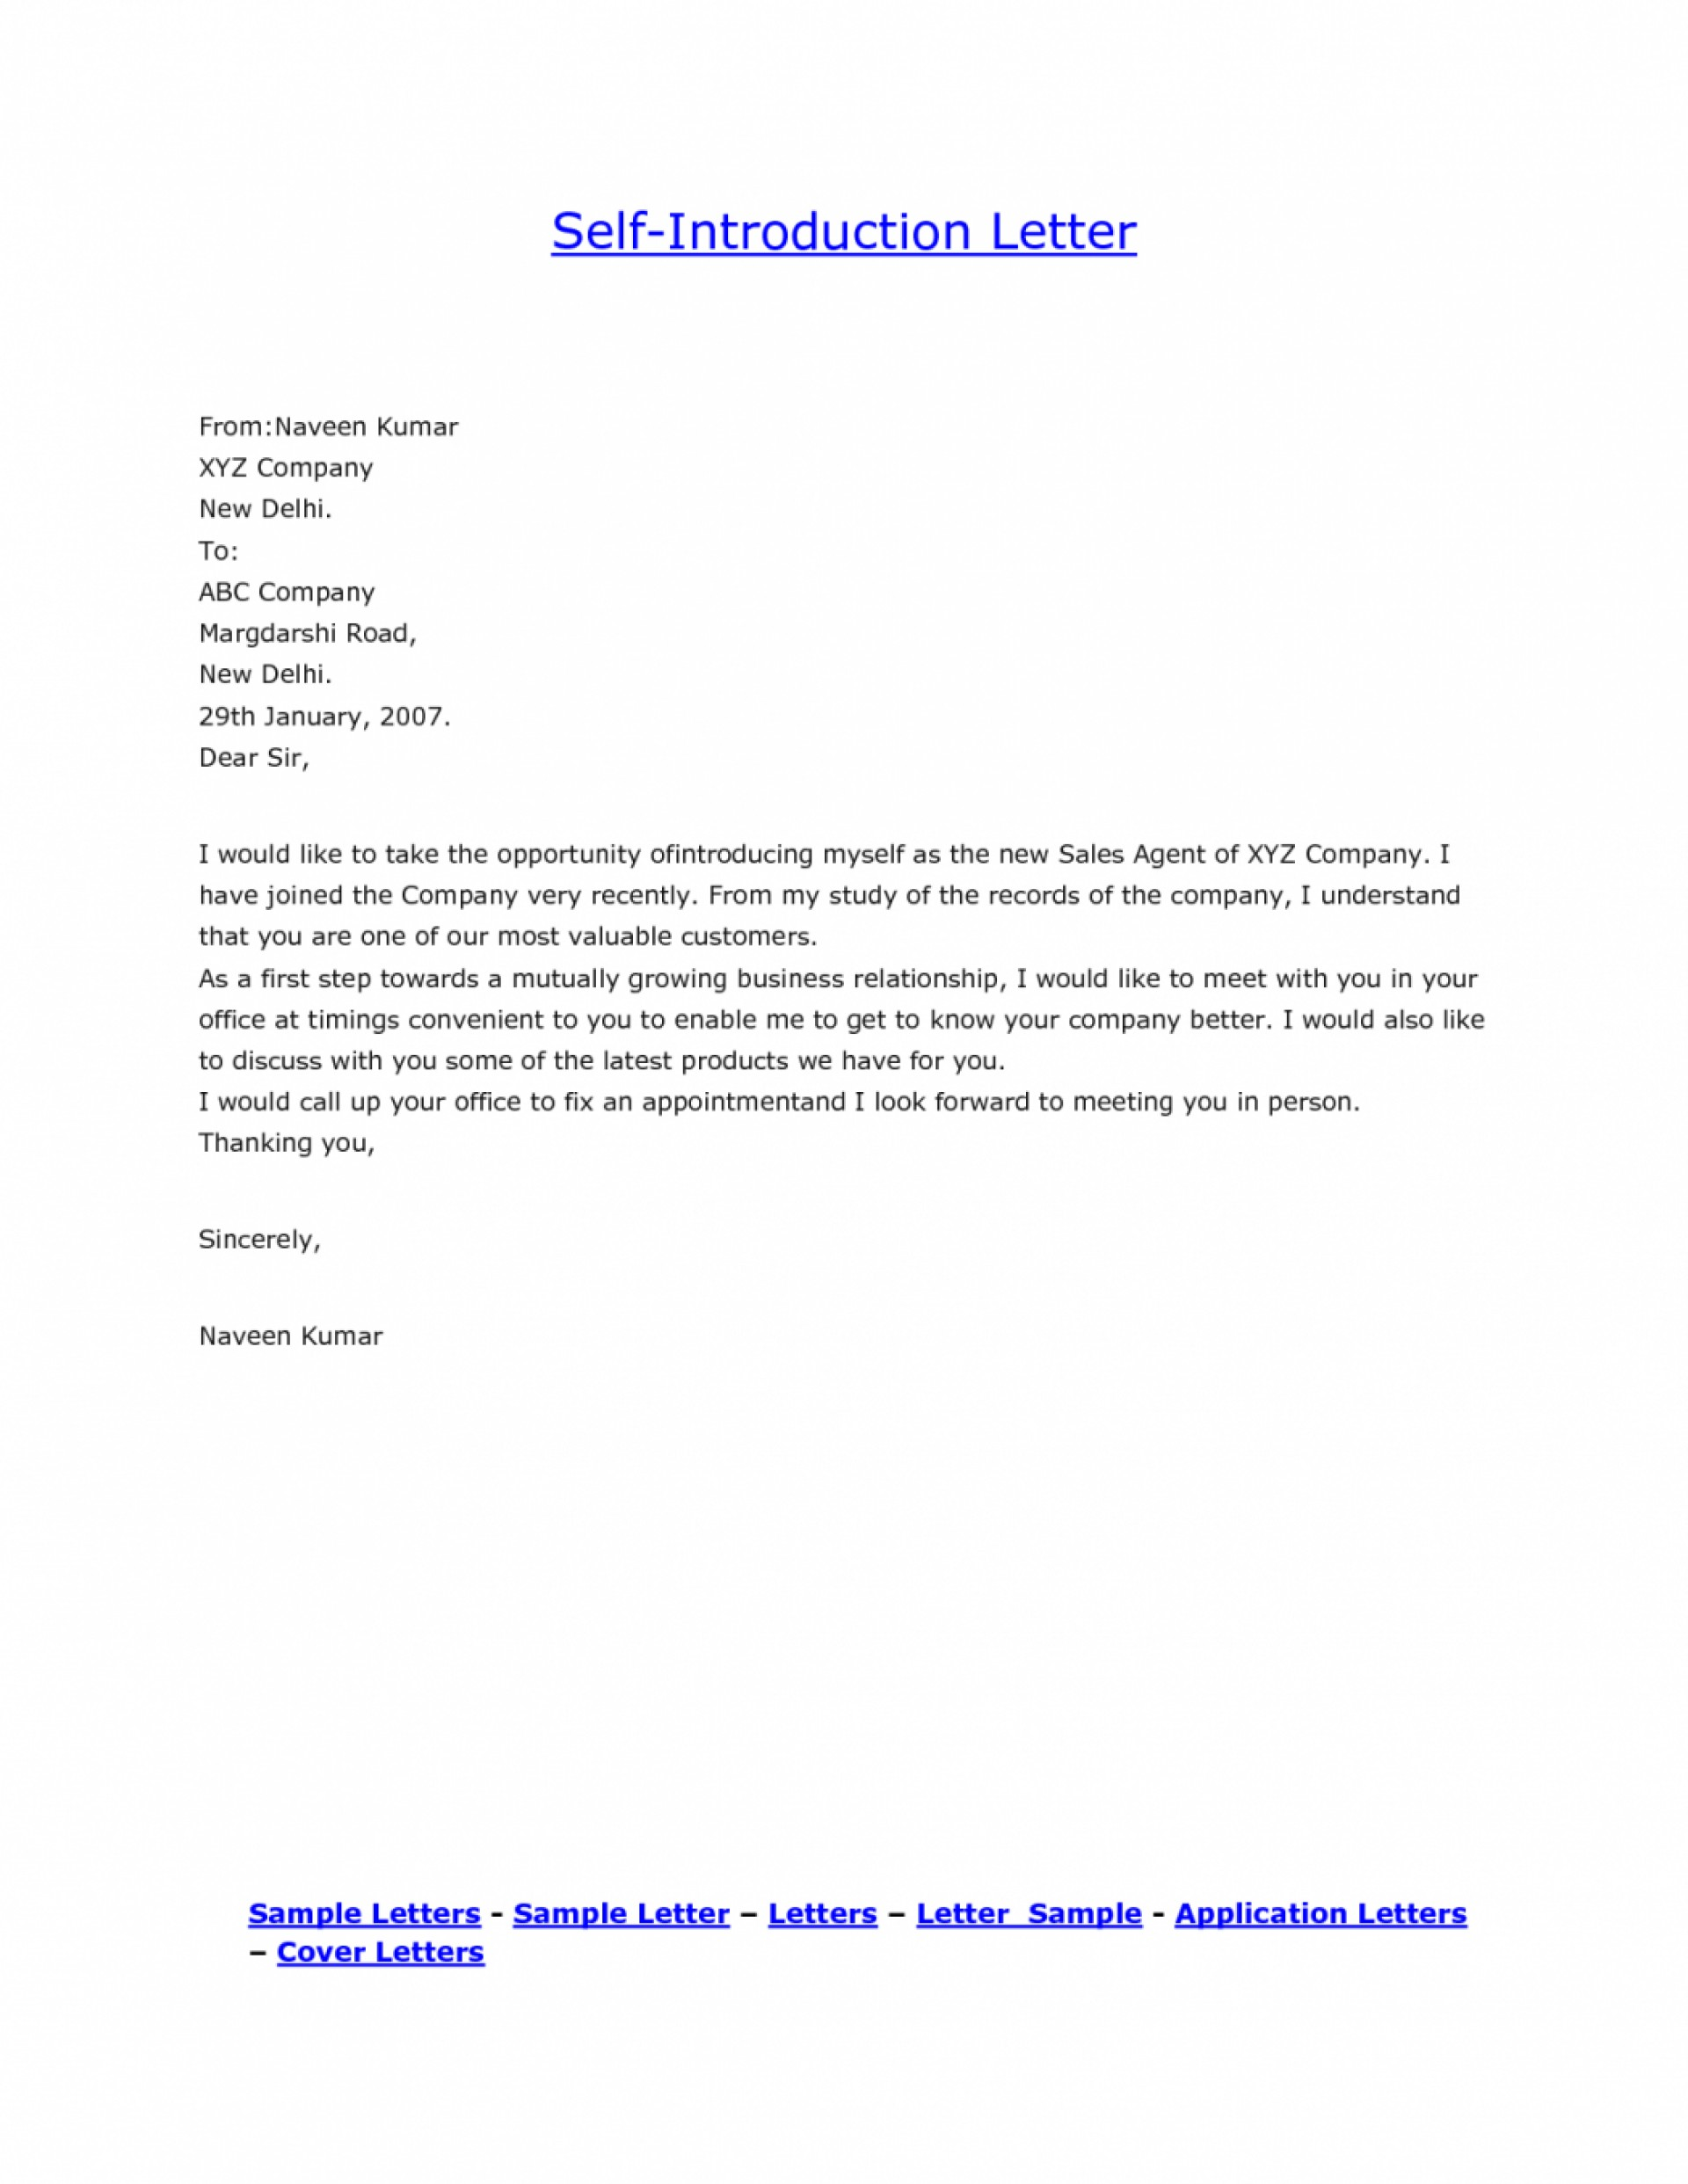 020 Introducing Myself Essay Self Introduction Introduce Personal Letter Template Sample How To Formally Yourself Via Writing 1048x1356 About Striking In Urdu For Interview Pdf 1920